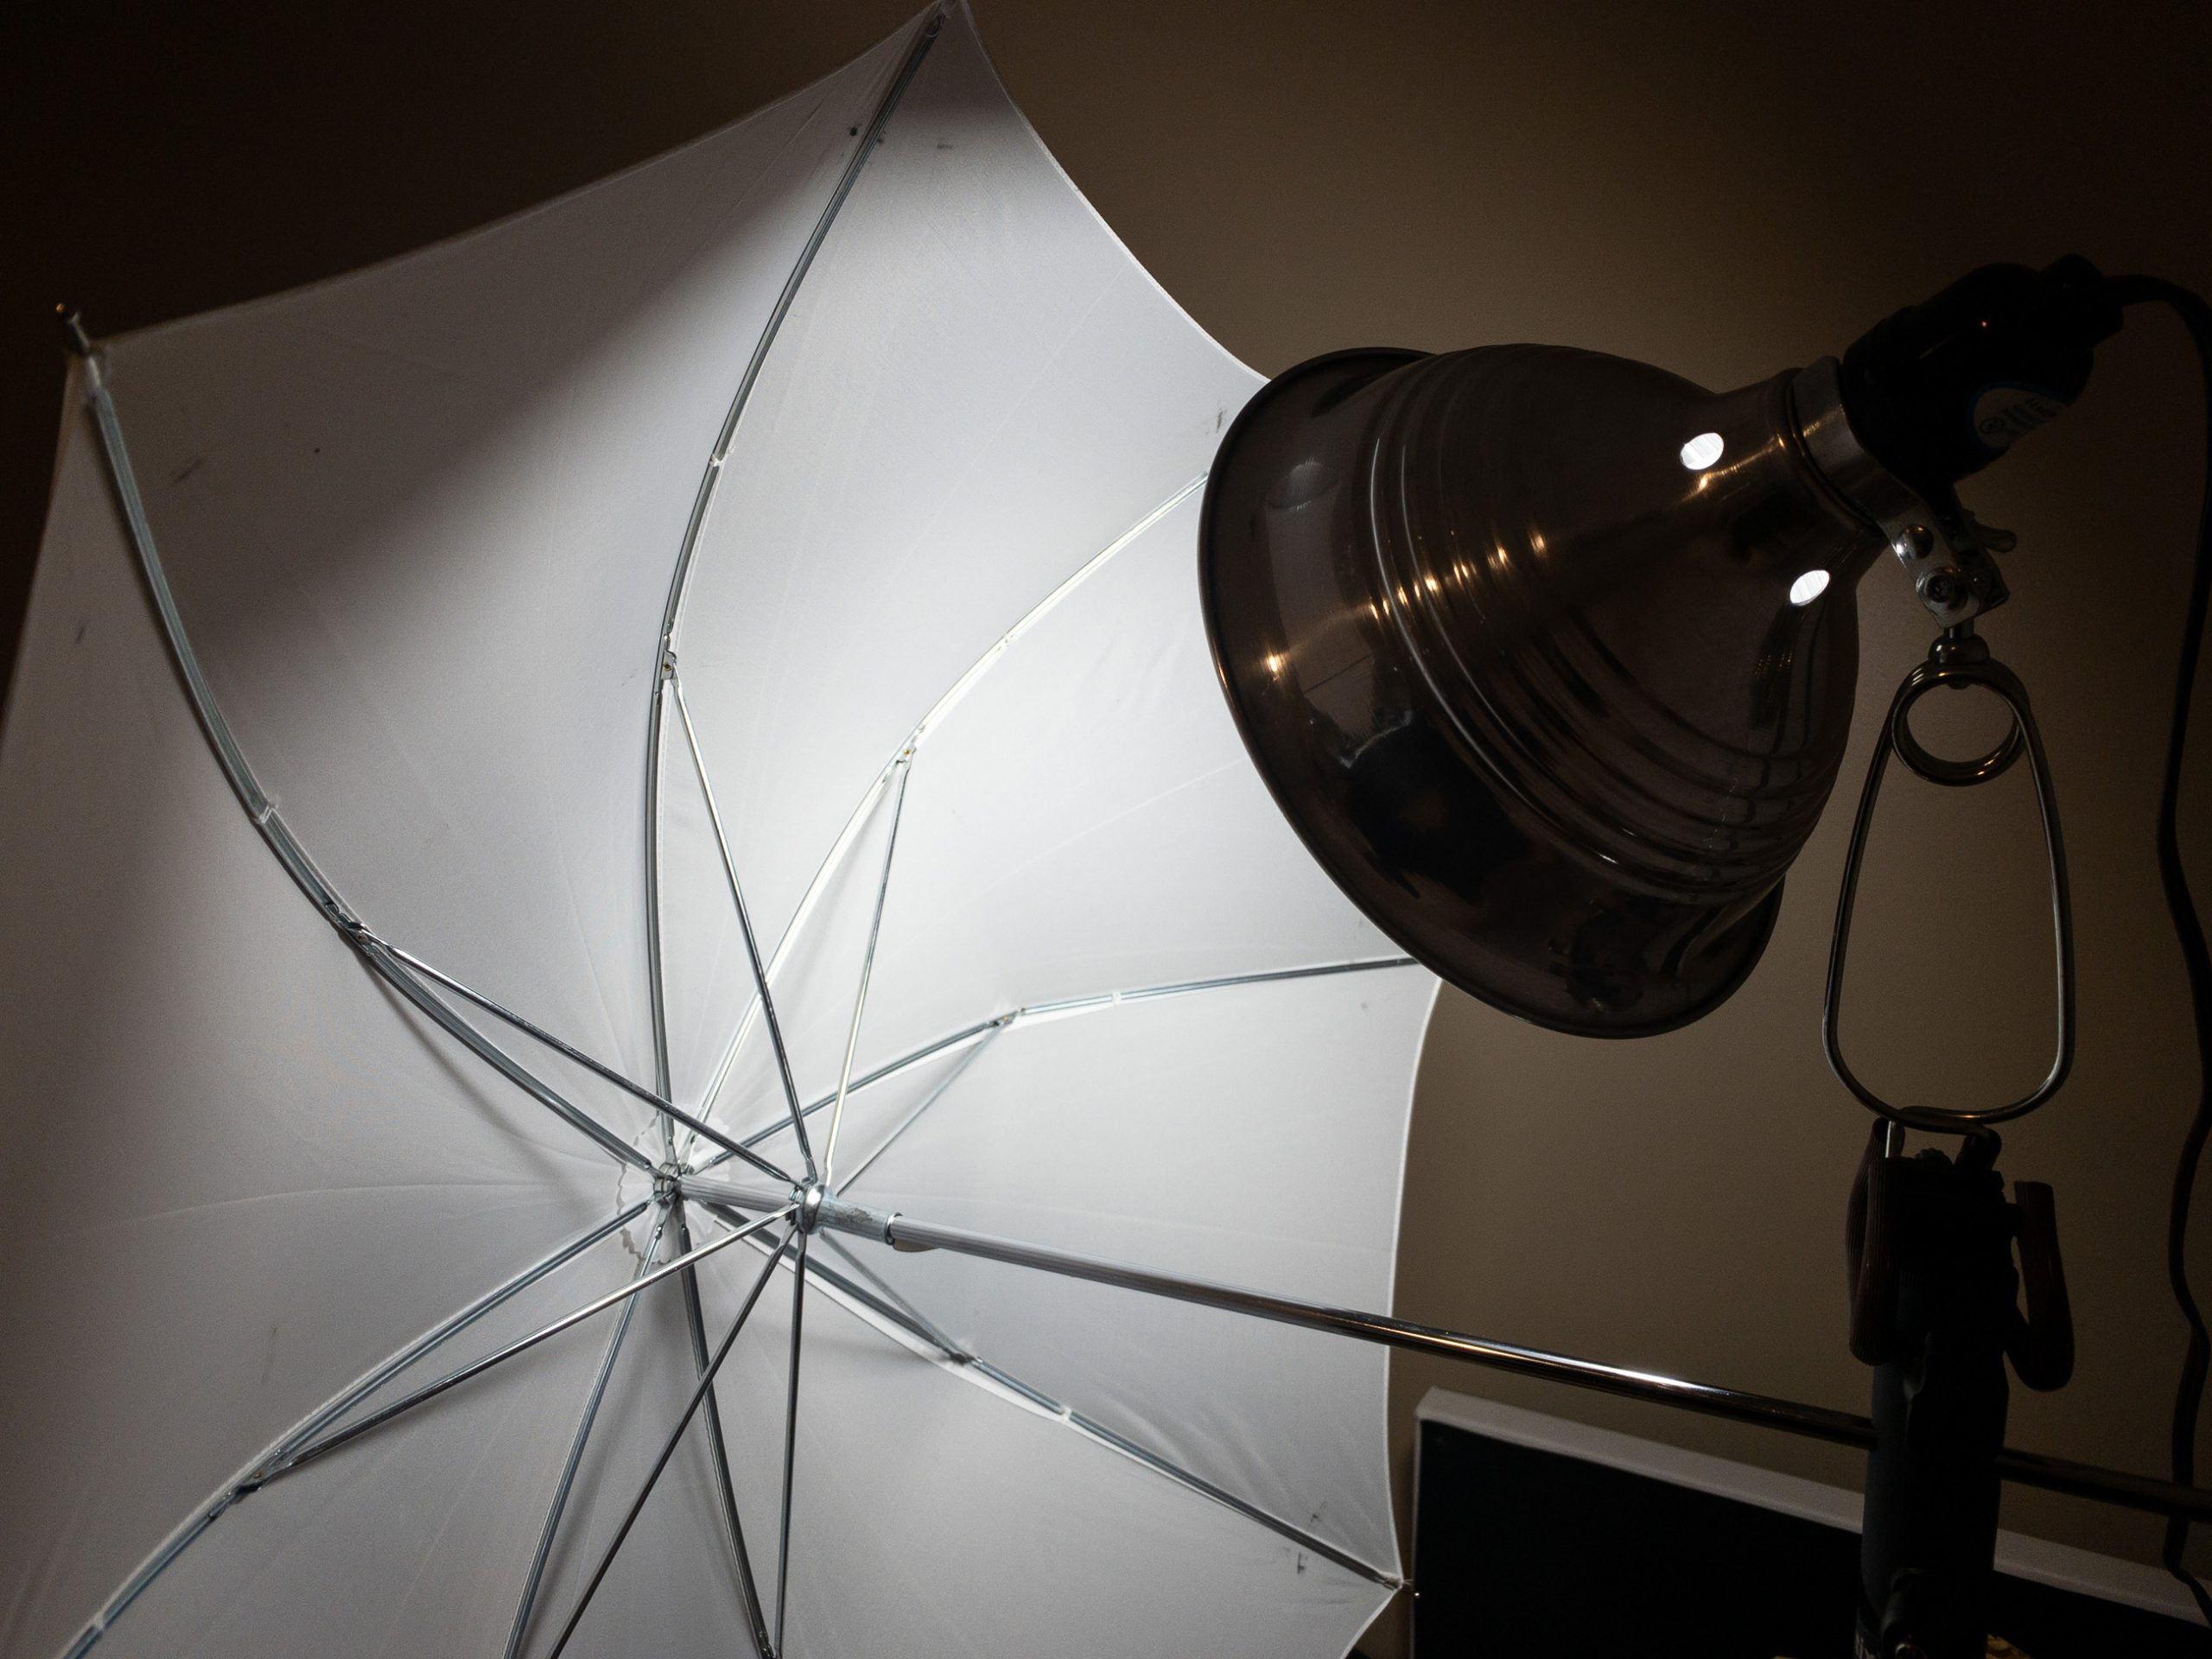 Shop Light firing into an umbrella